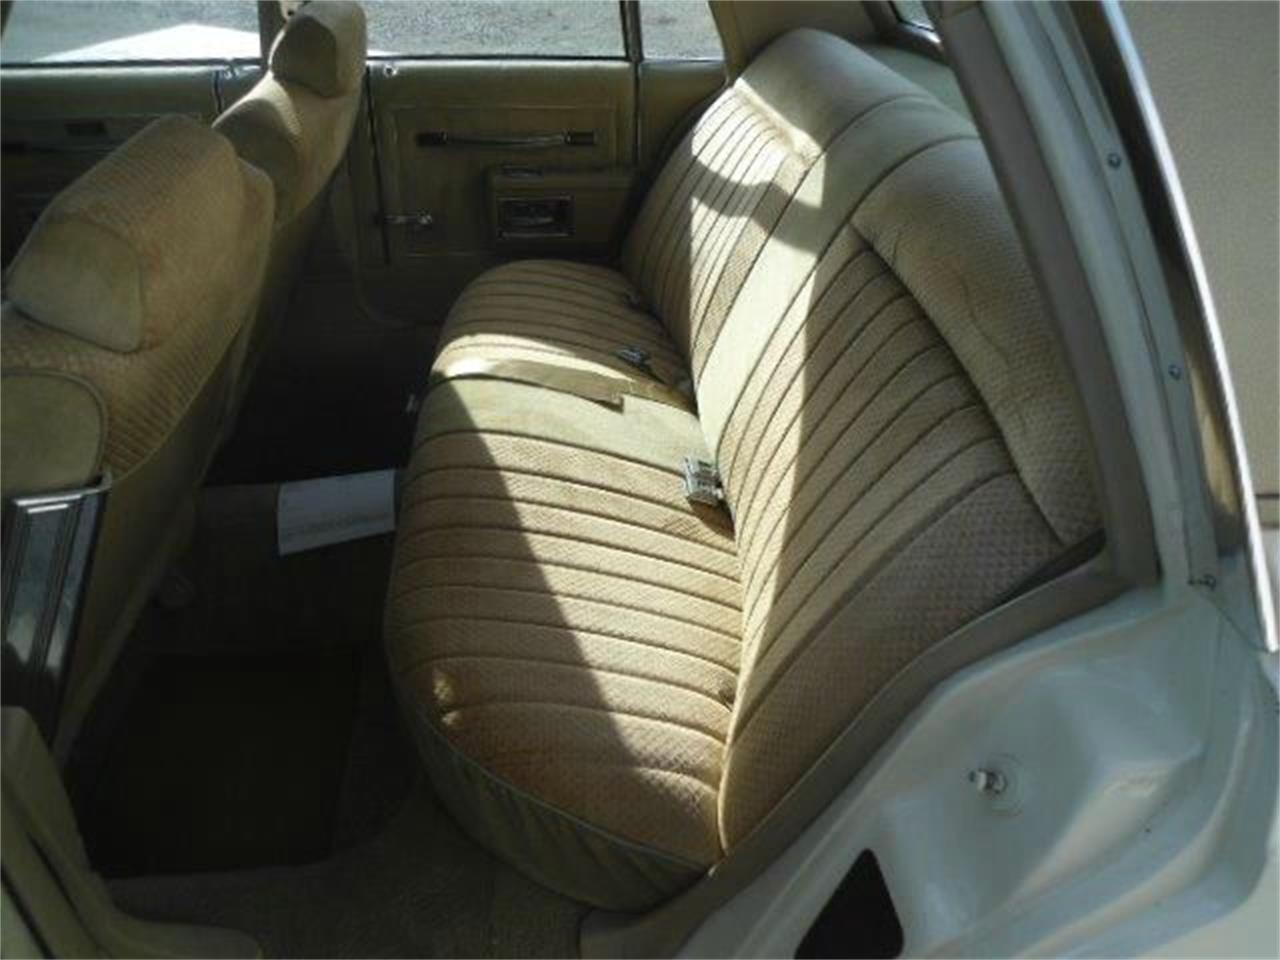 1981 Oldsmobile Delta 88 for sale in Staunton, IL – photo 4